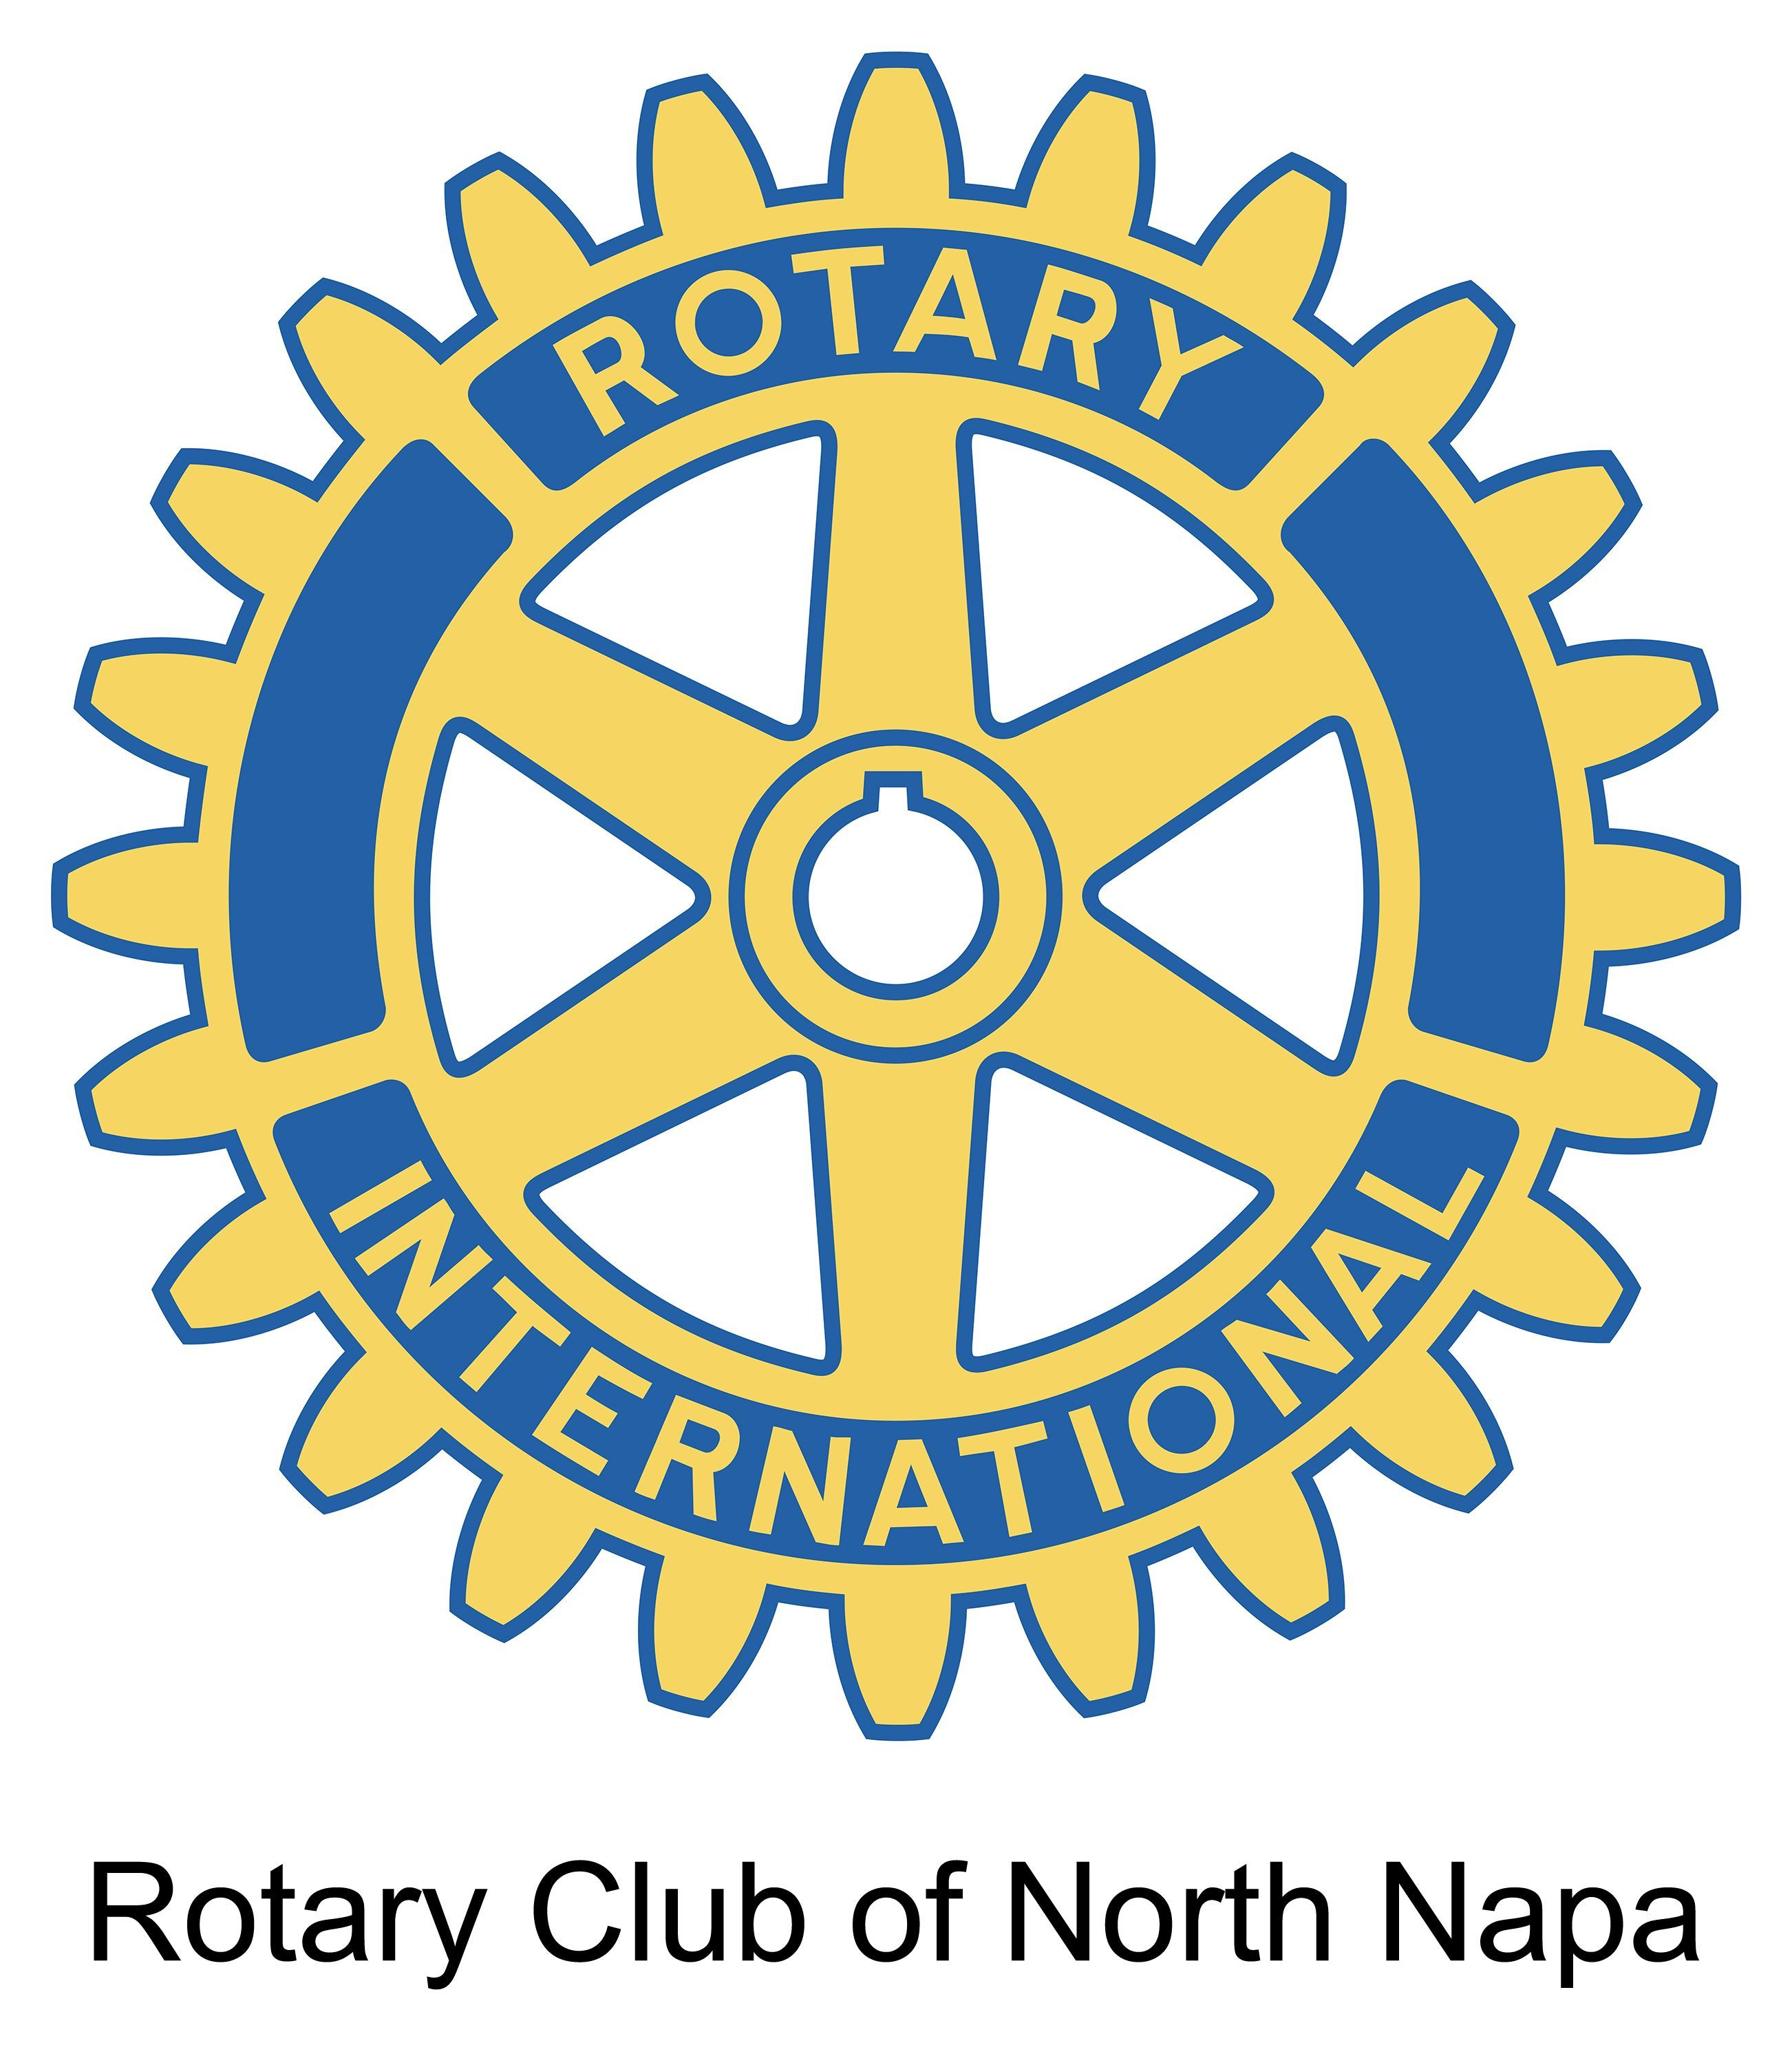 North Napa Rotary